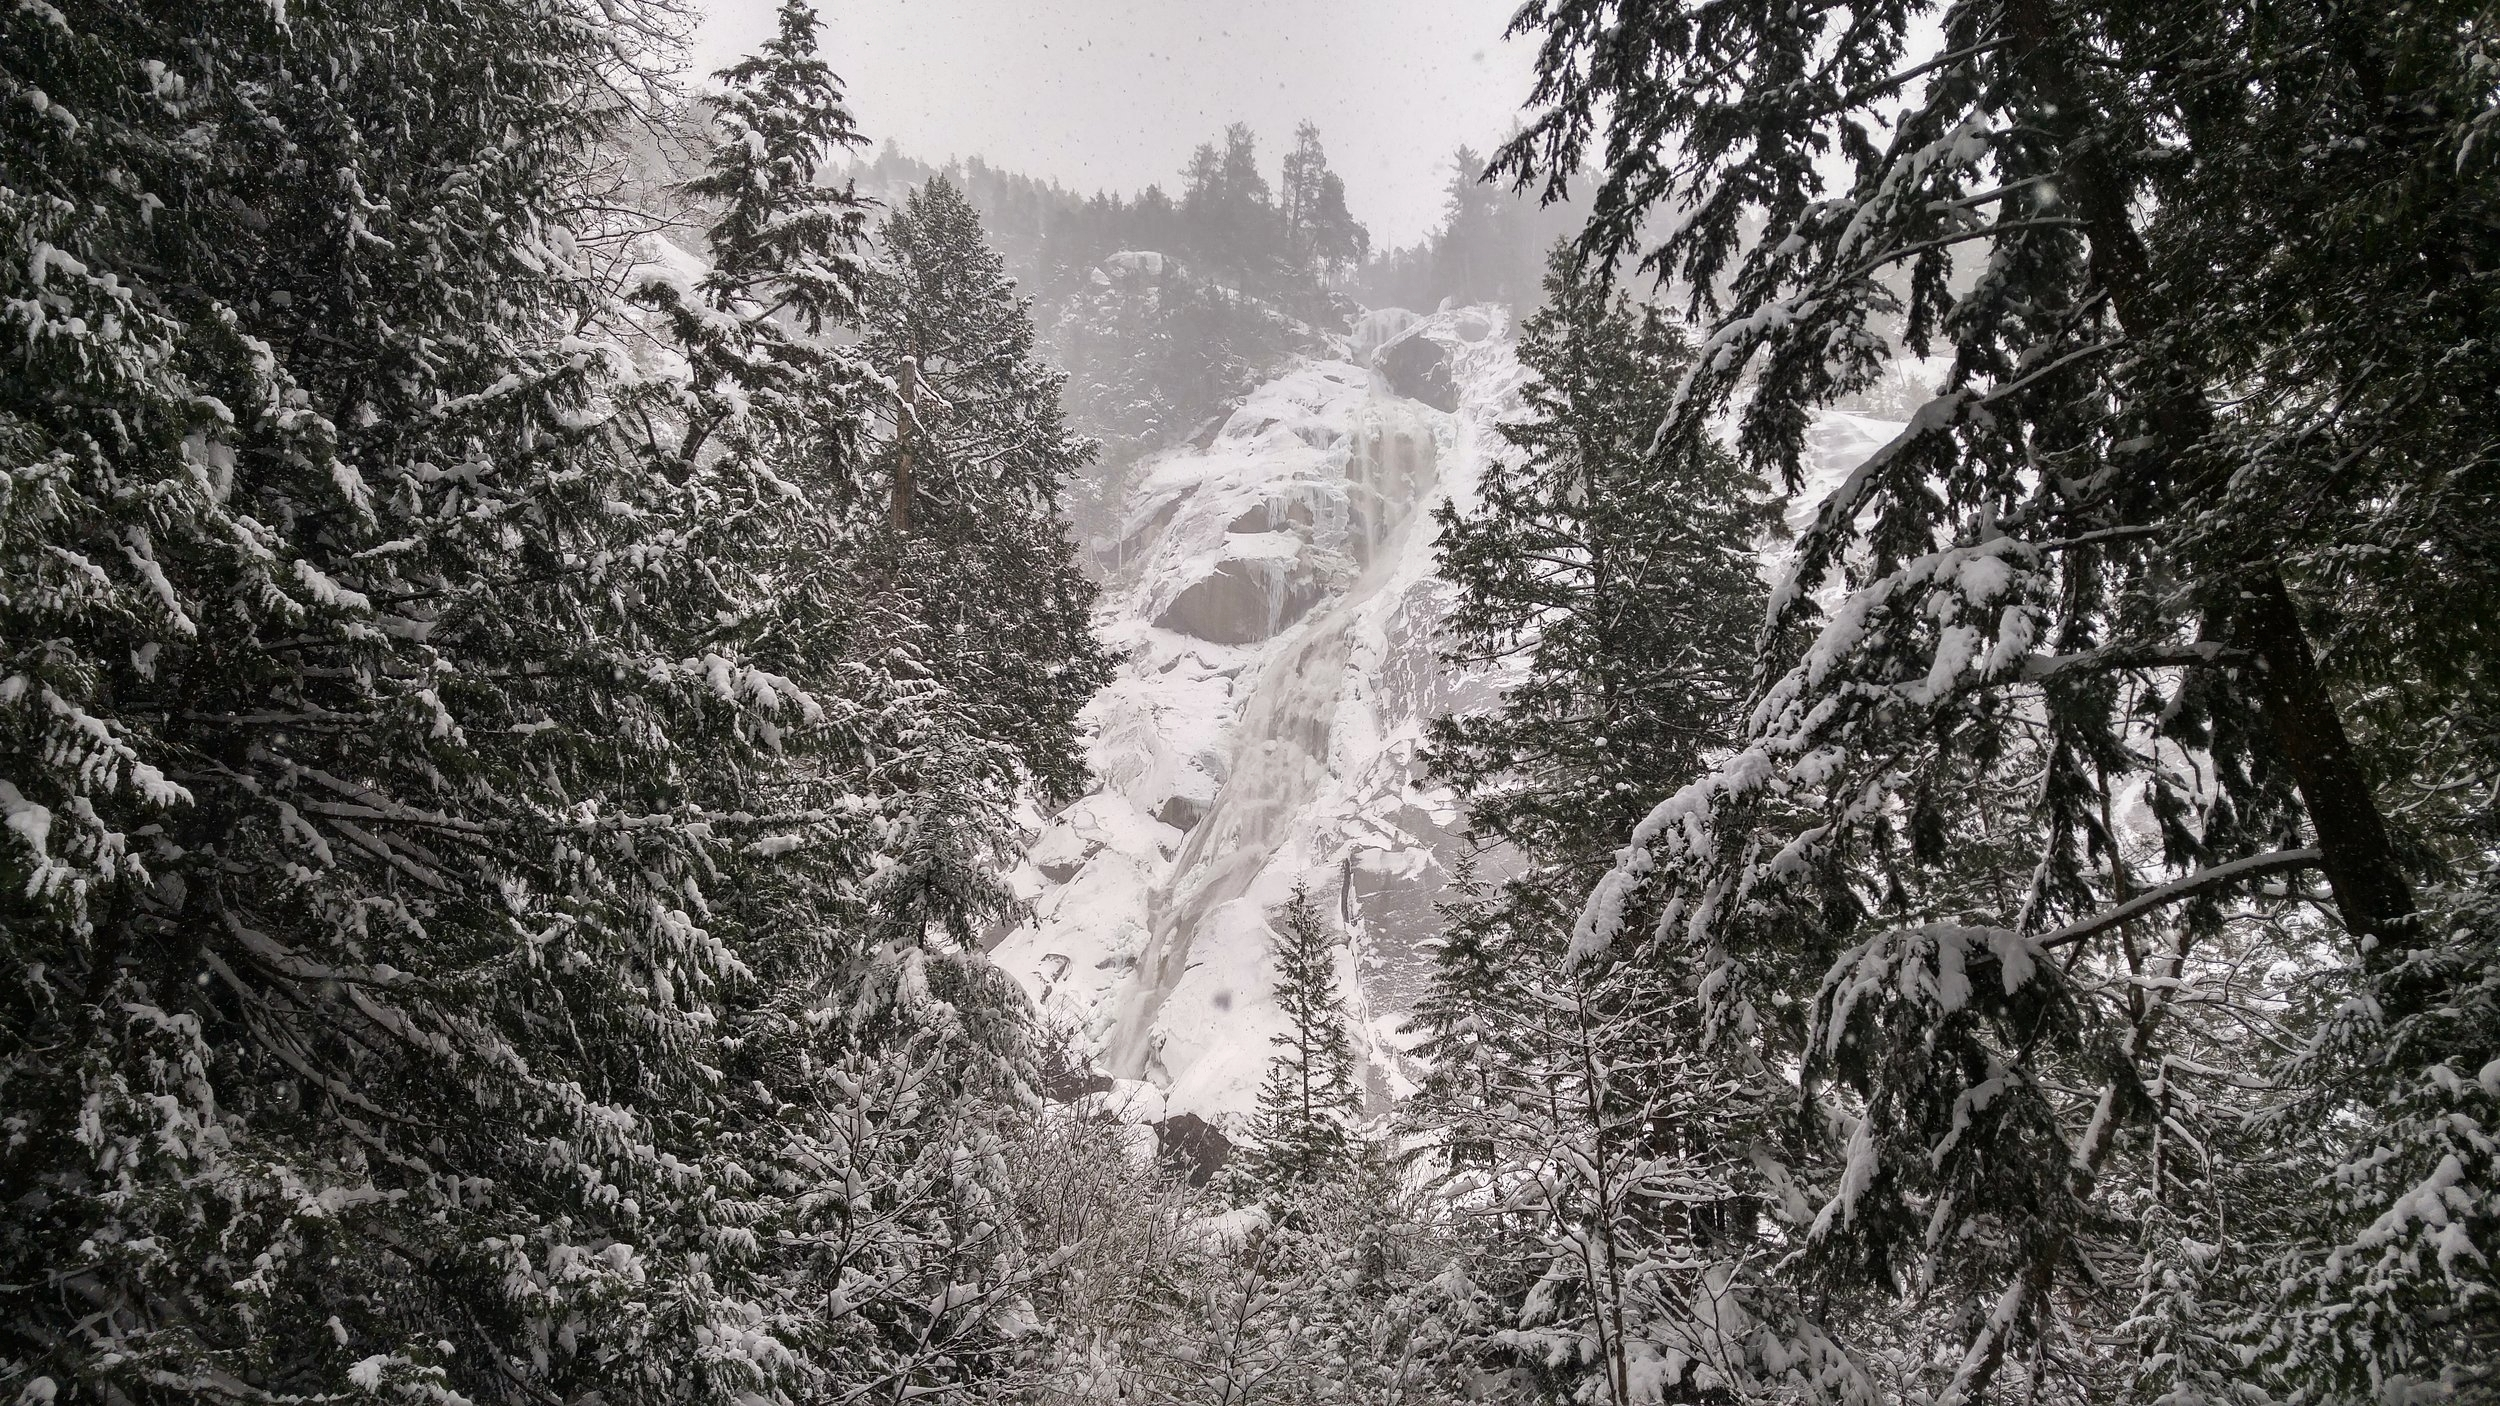 Yet another snowshoe trip brought our club out to Squamish, BC, via the Sea-to-Sky Highway. That day was QUITE the adventure.